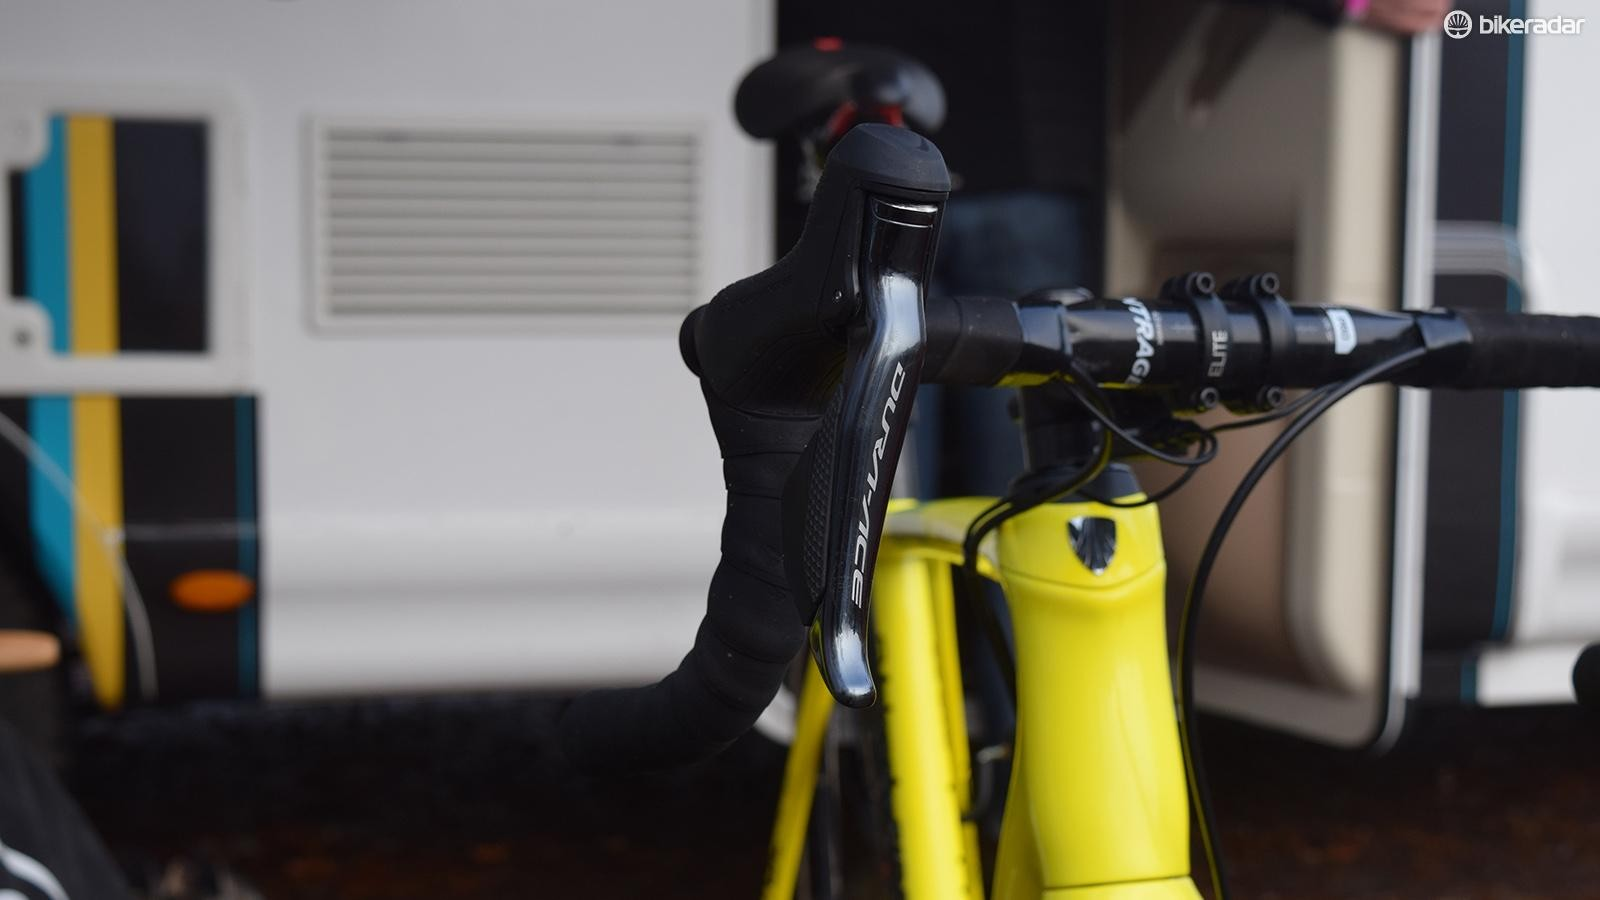 Shimano Dura-Ace R9170 shifters on Toon Aerts' Trek Boone